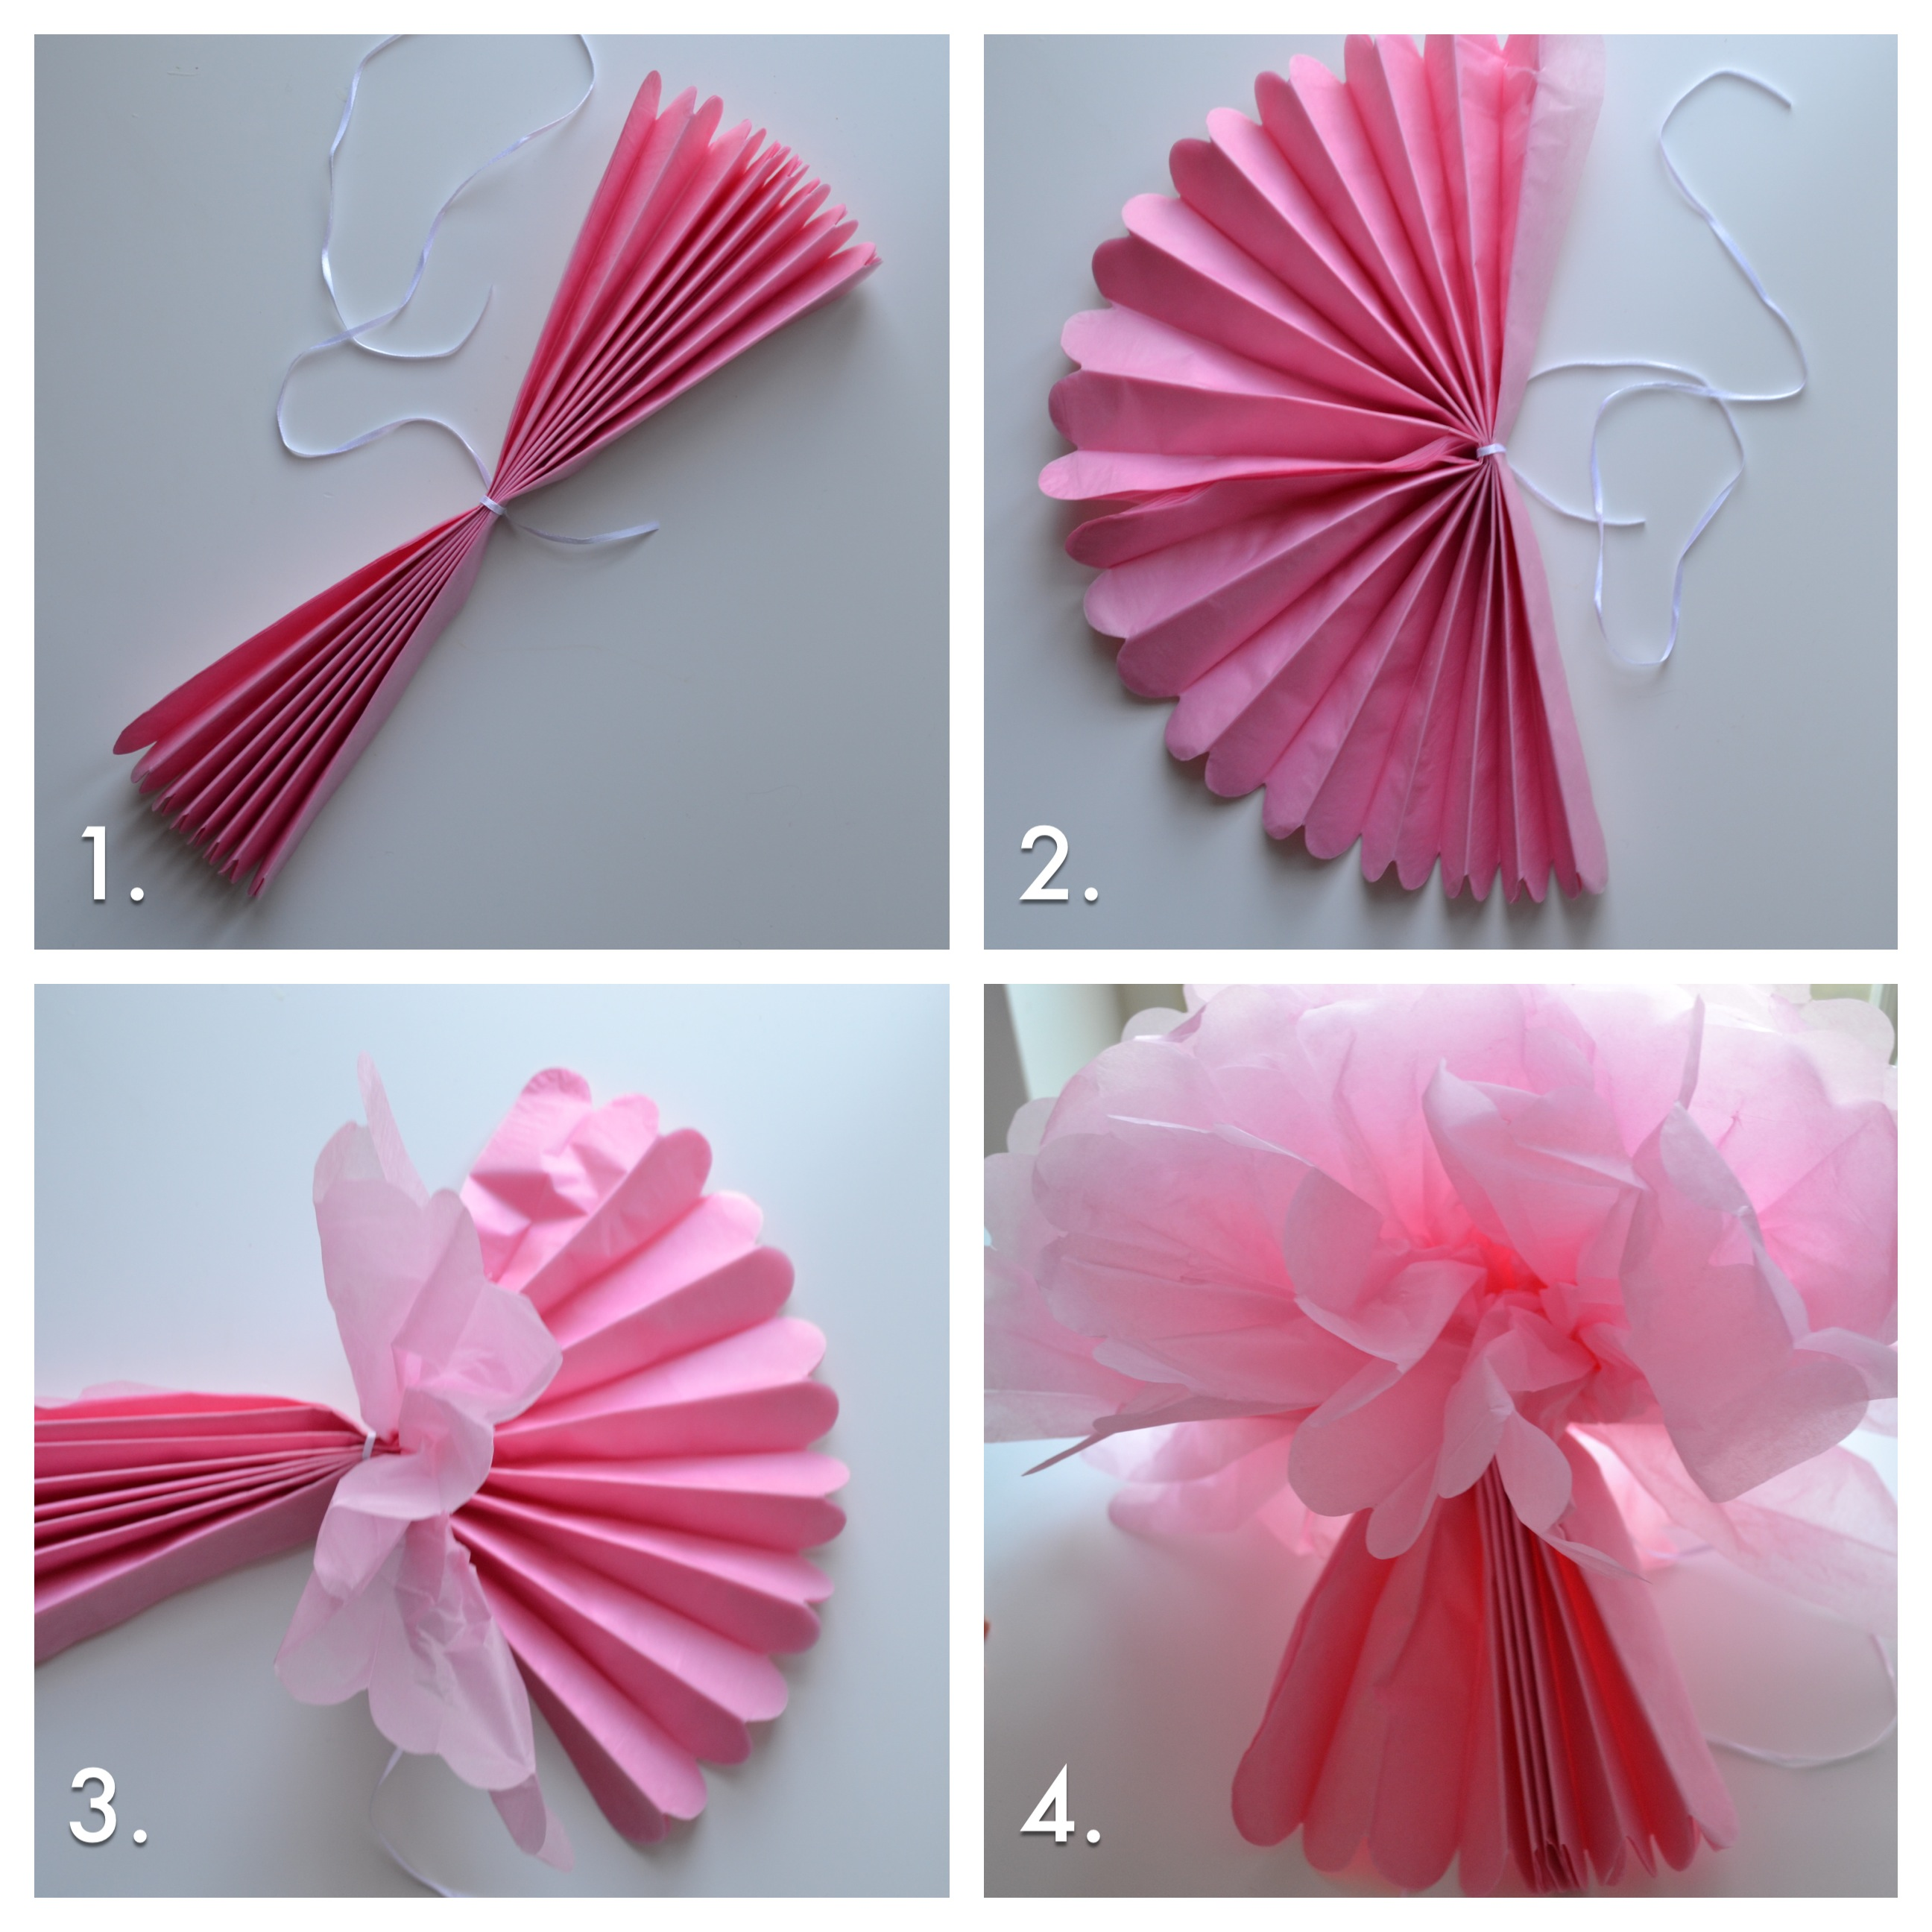 How To Make A Paper Kite At Home